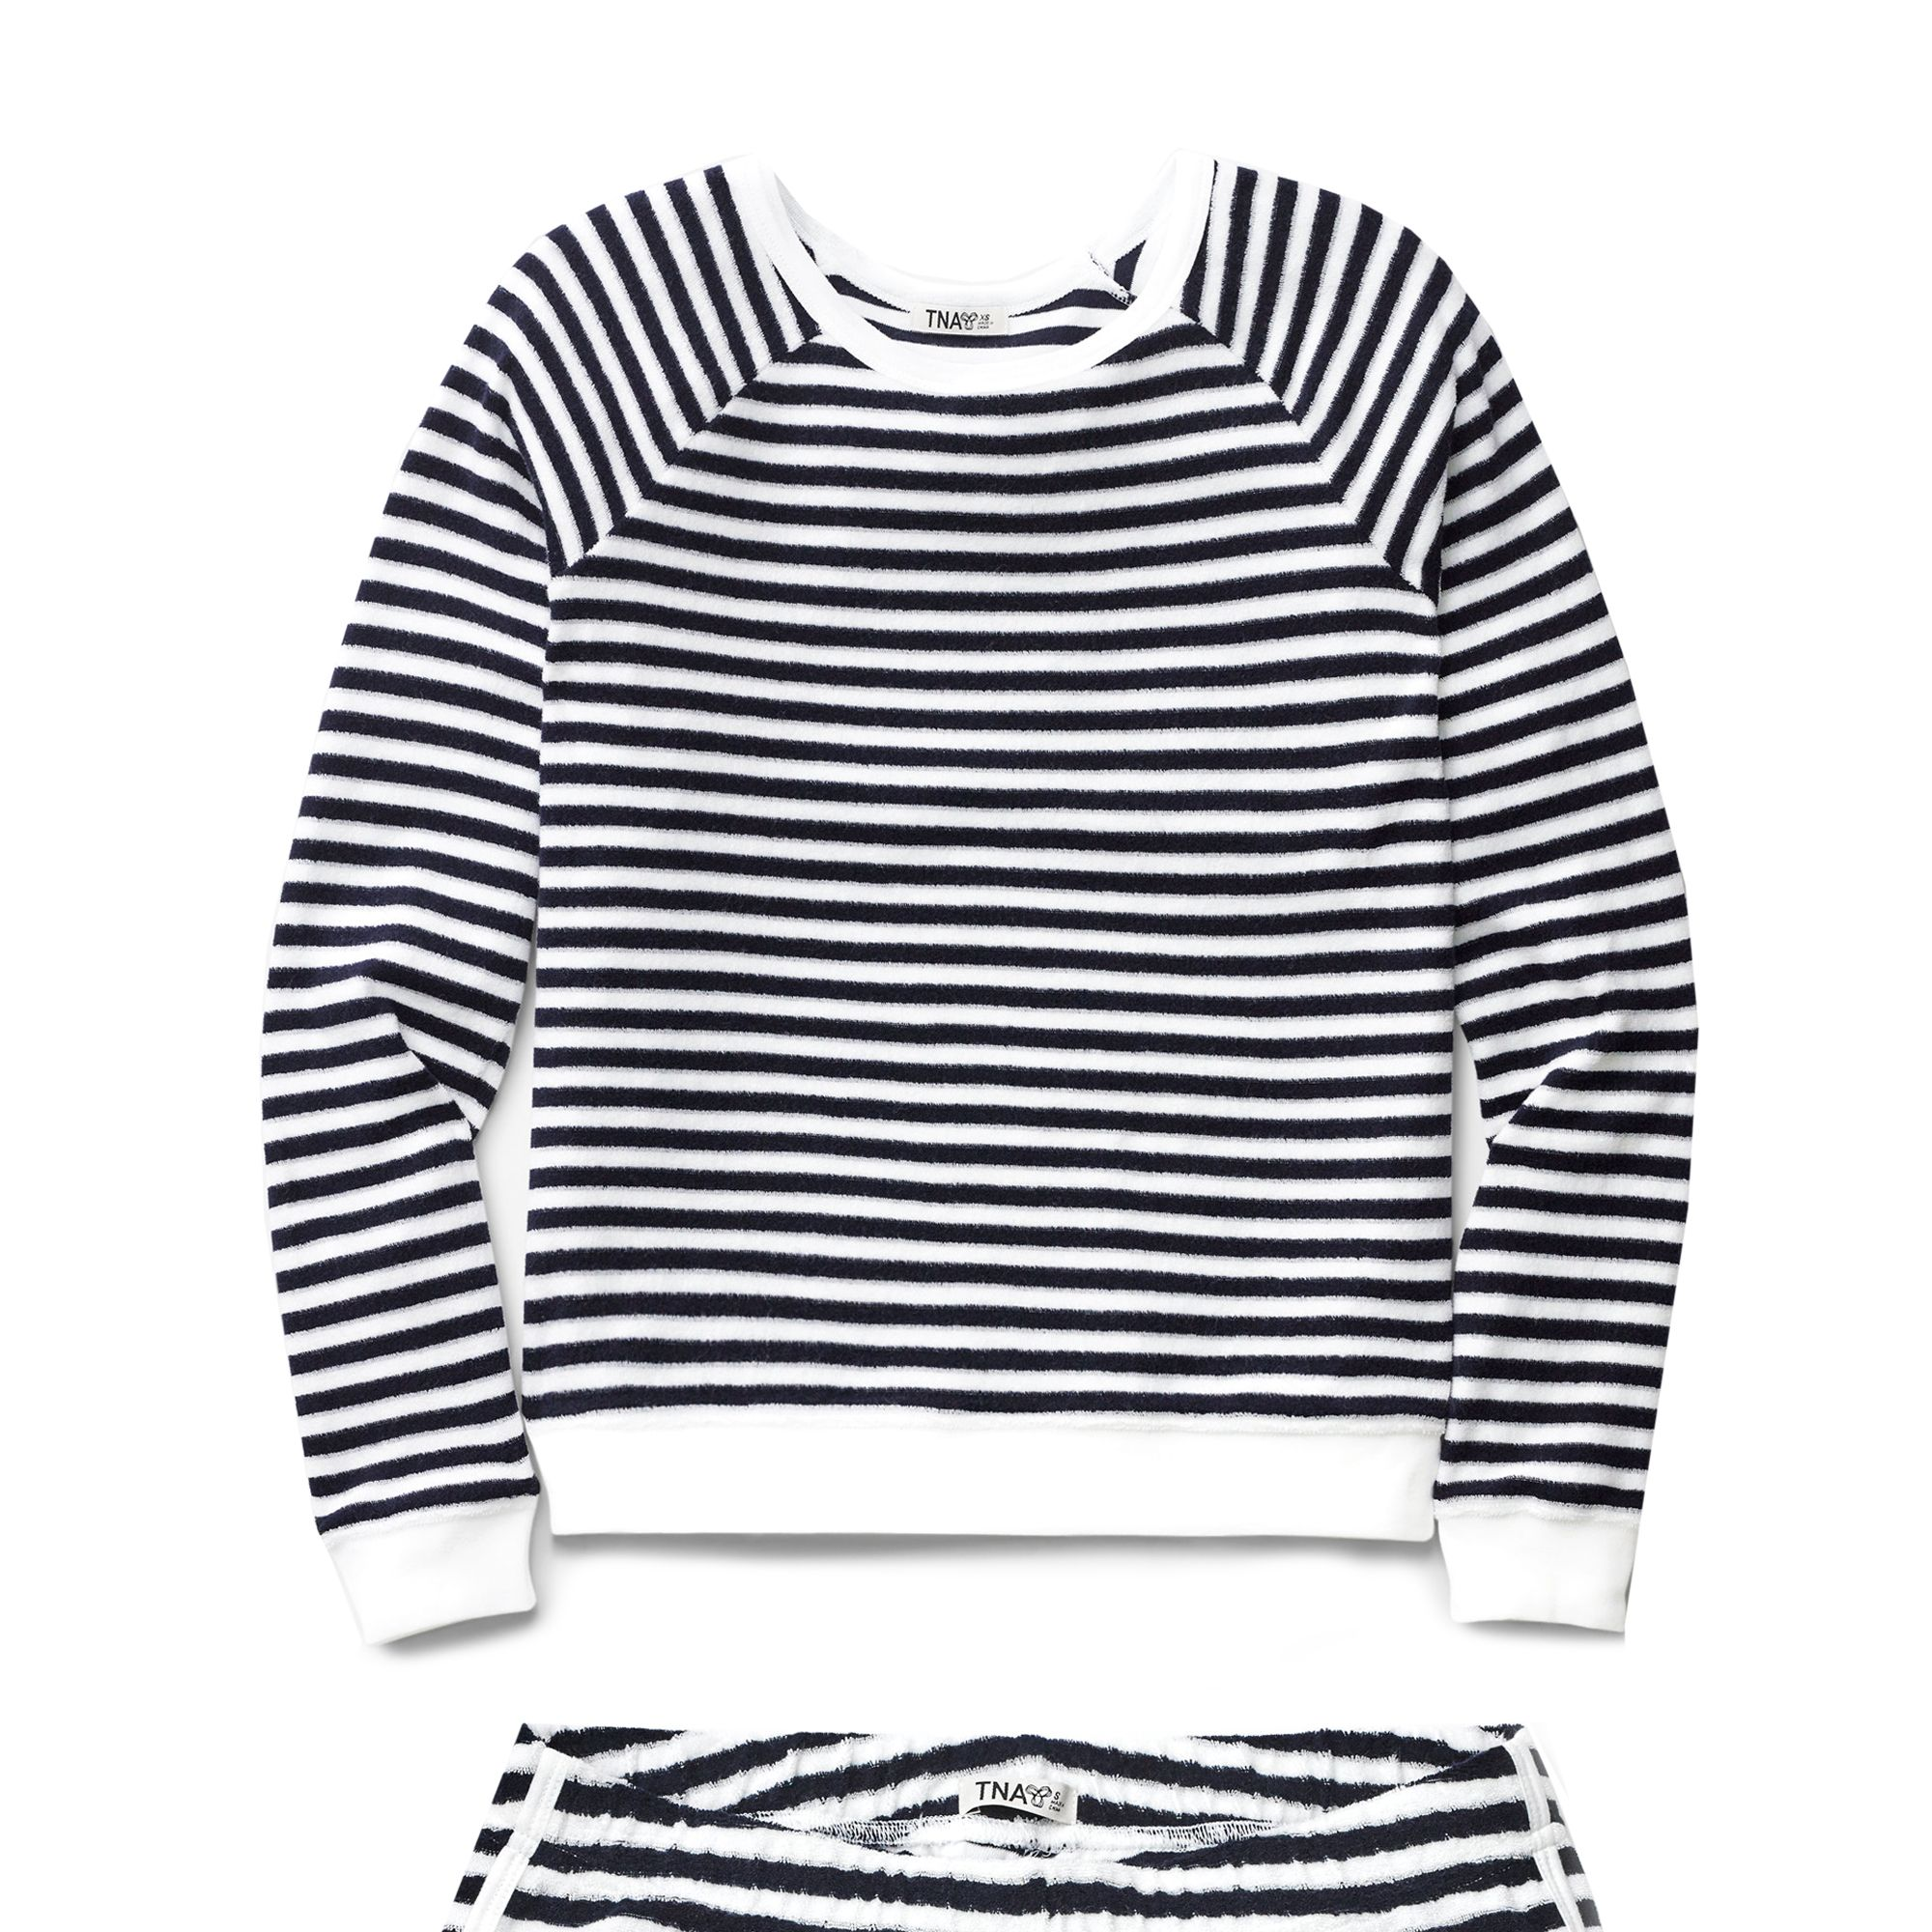 "<strong>Aritzia</strong> top, $50, <a target=""_blank"" href=""http://us.aritzia.com/product/franconia-sweater/56121.html"">aritzia.com</a>, and shorts, $40, <a target=""_blank"" href=""http://us.aritzia.com/product/yosemite-short/56449.html?dwvar_56449_color=4473#start=13"">aritzia.com.</a>"